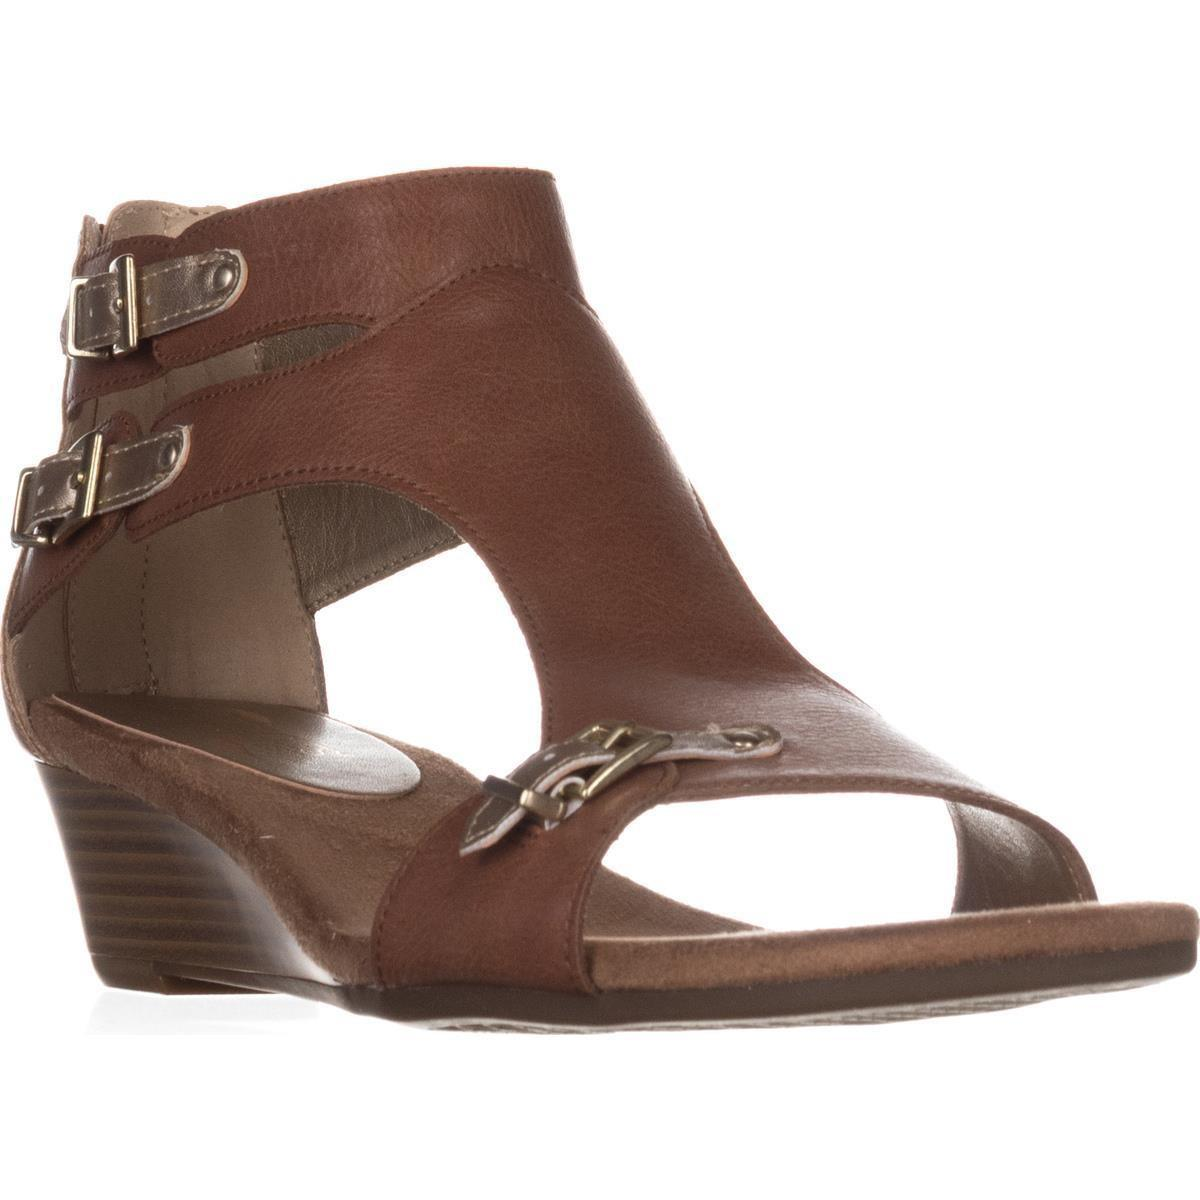 bd046f43767 Lyst - Aerosoles Yet Another Low Wedge Sandals in Brown